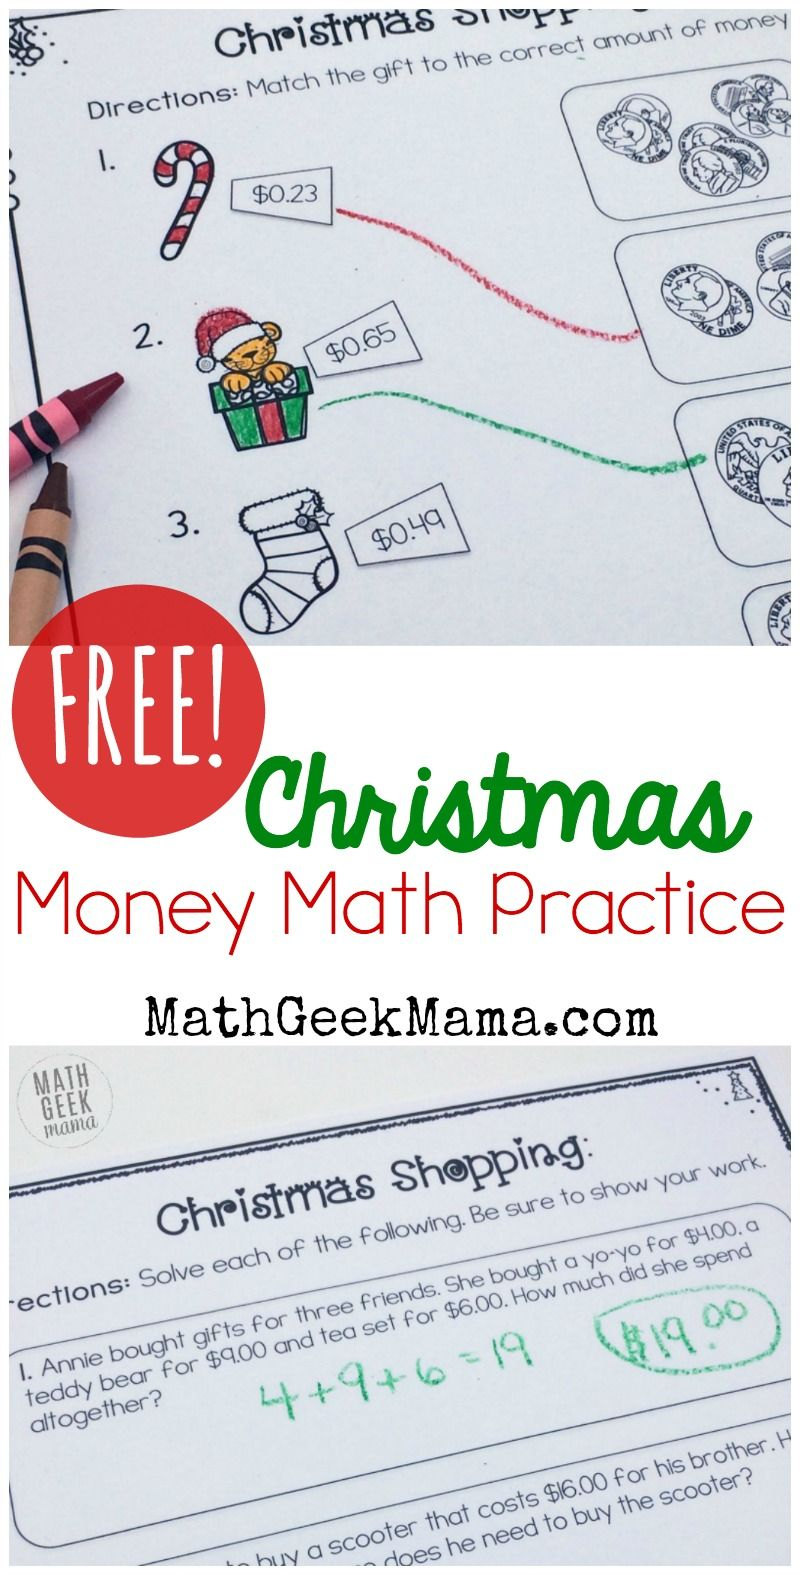 worksheet Money Practice Worksheets christmas shopping money math worksheets free skills word this adorable set of themed is perfect for kindergarten through first grade includes 2 pages